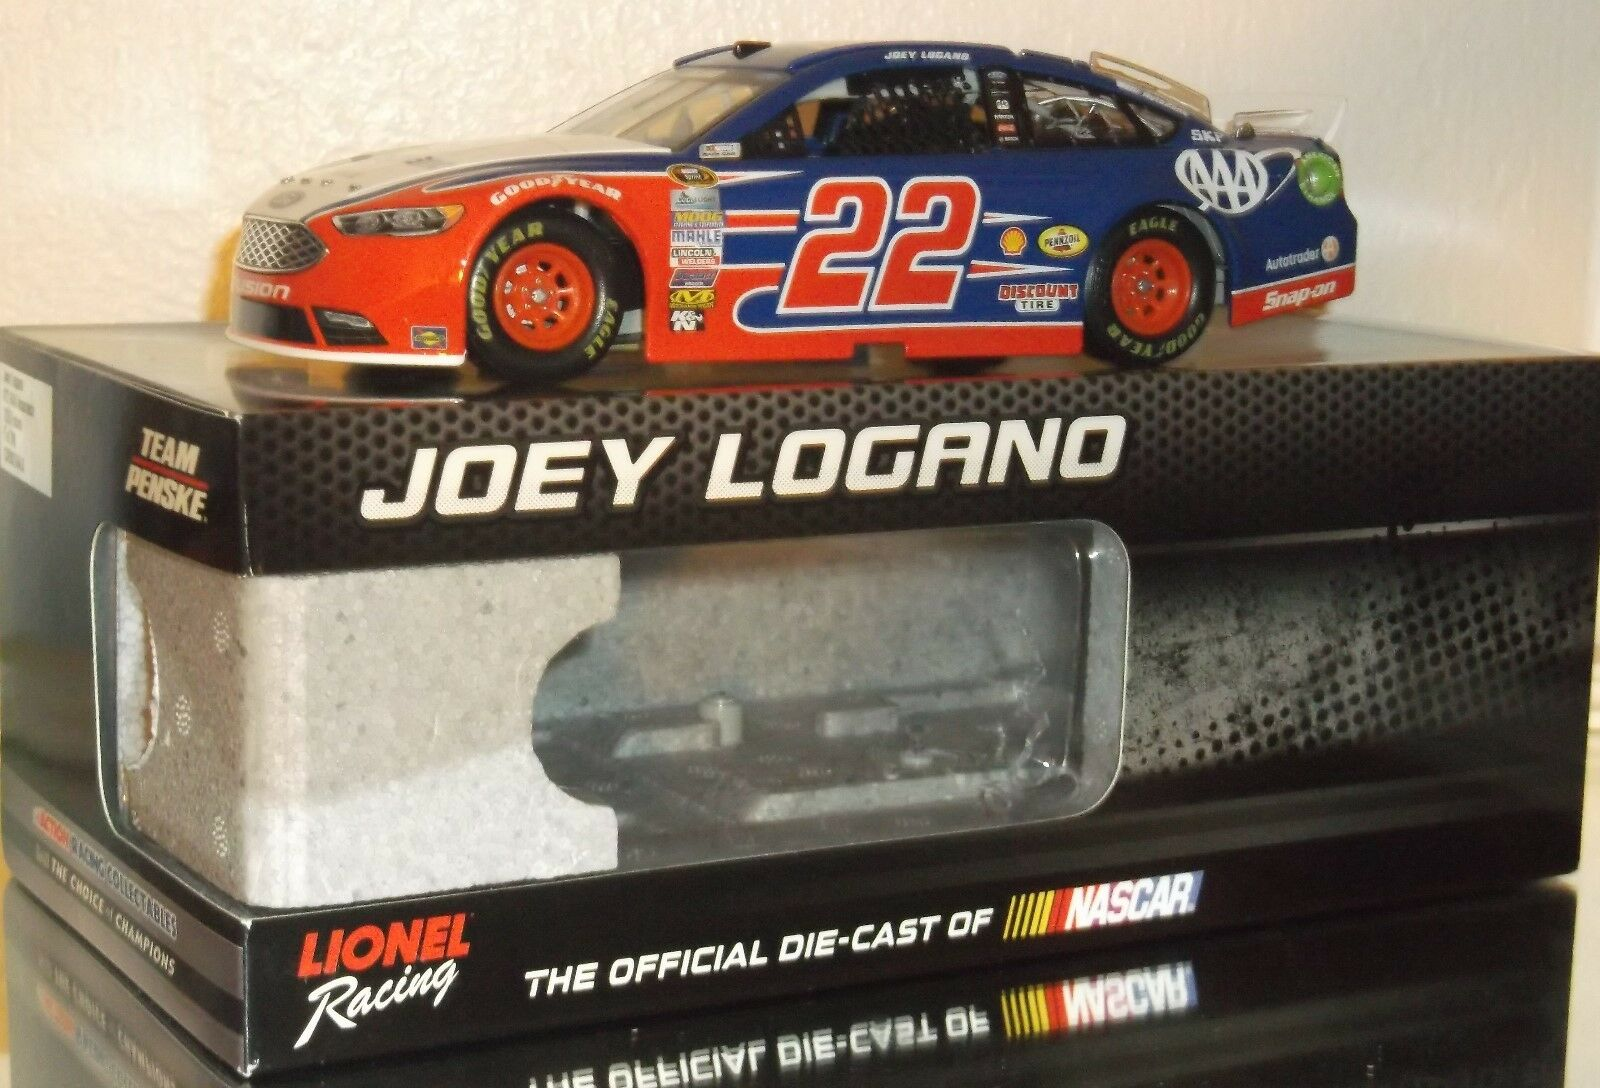 2016 JOEY LOGANO  22 AAA INSURANCE rosso, bianca  & blu 1/24 CAR 326/700 MUST HAVE